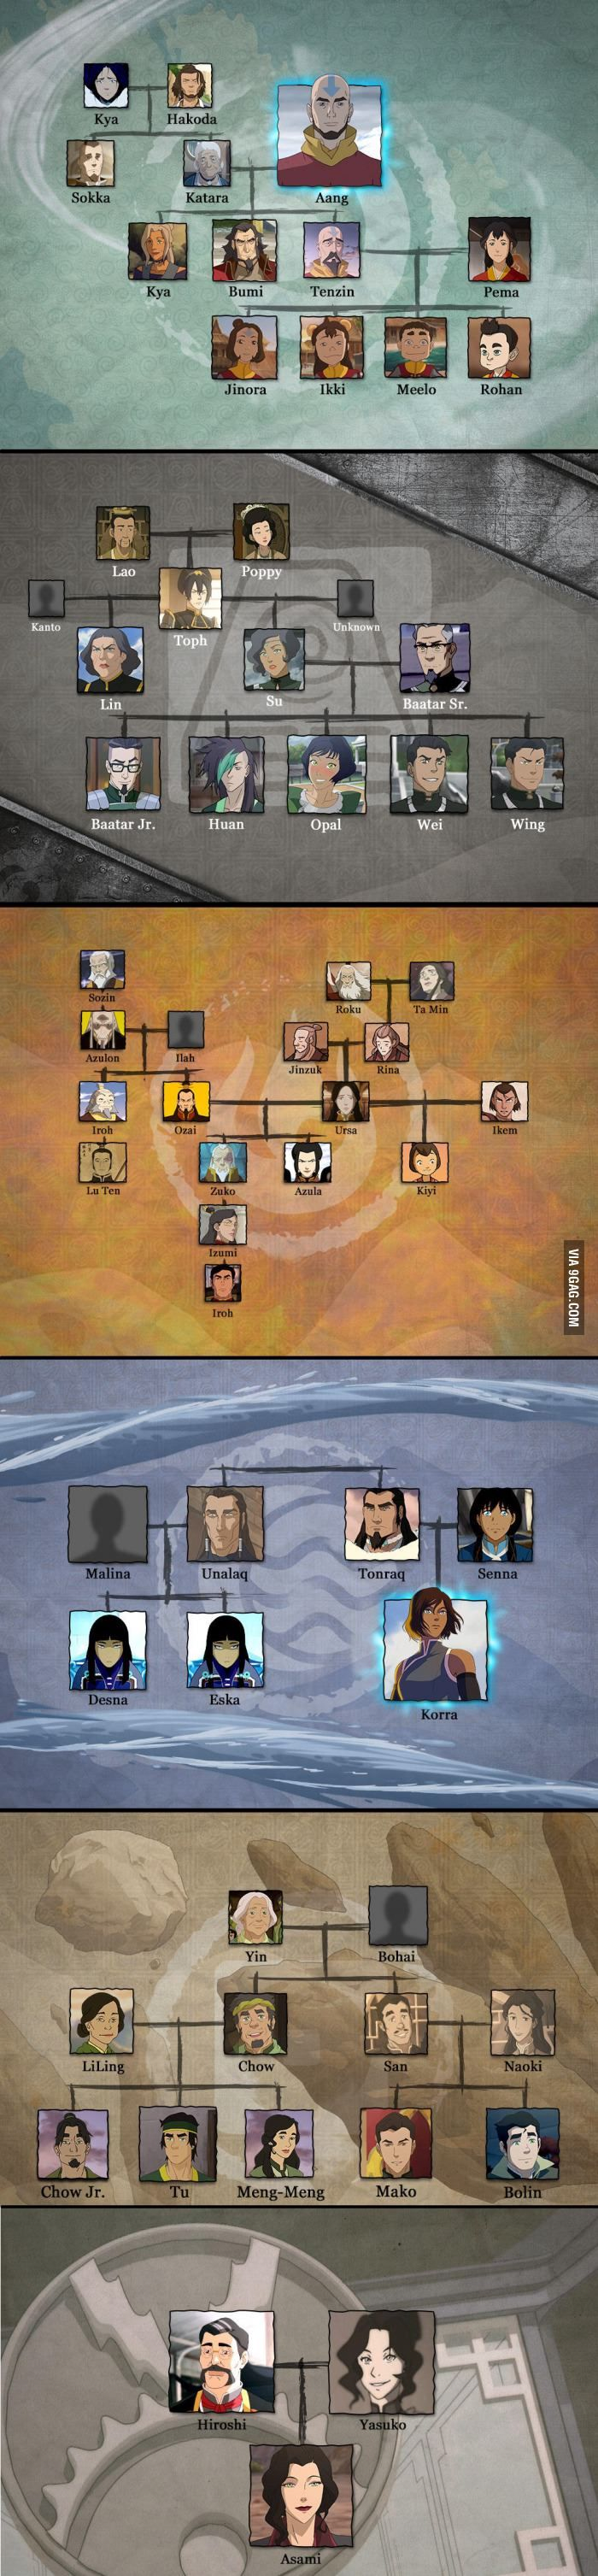 Official Avatar Family Tree : official, avatar, family, Official, Avatar, Family, Trees!, Tree,, Airbender,